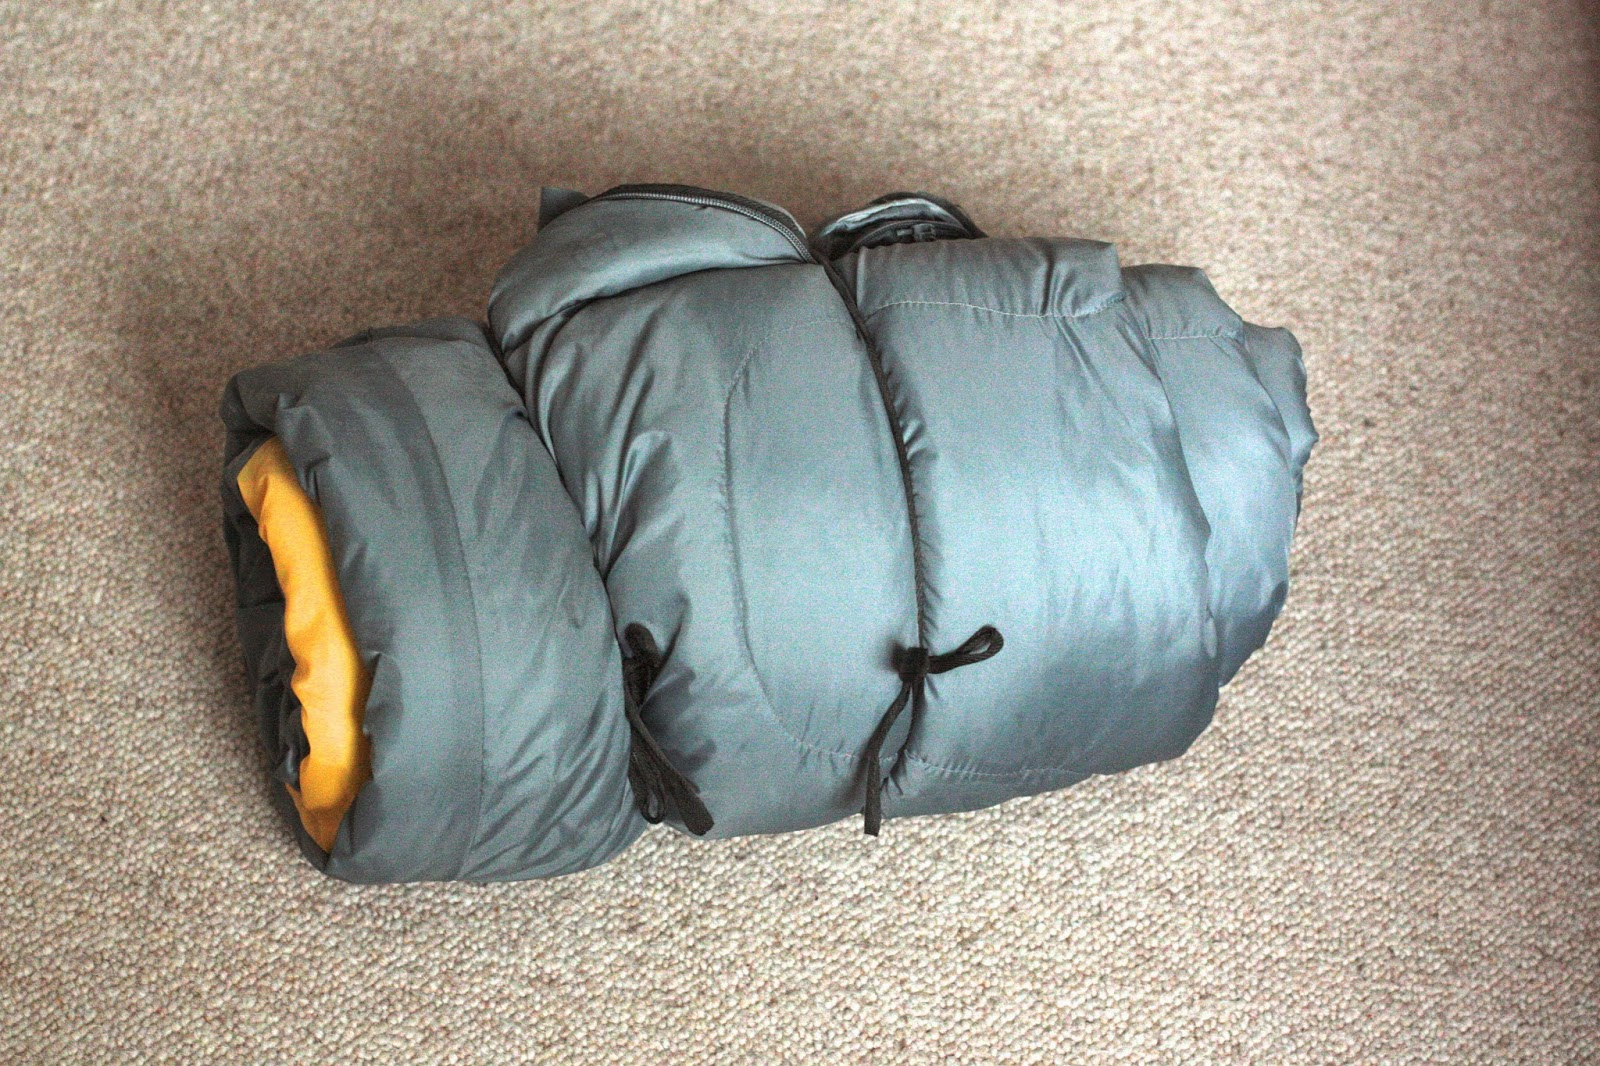 A sleeping bag